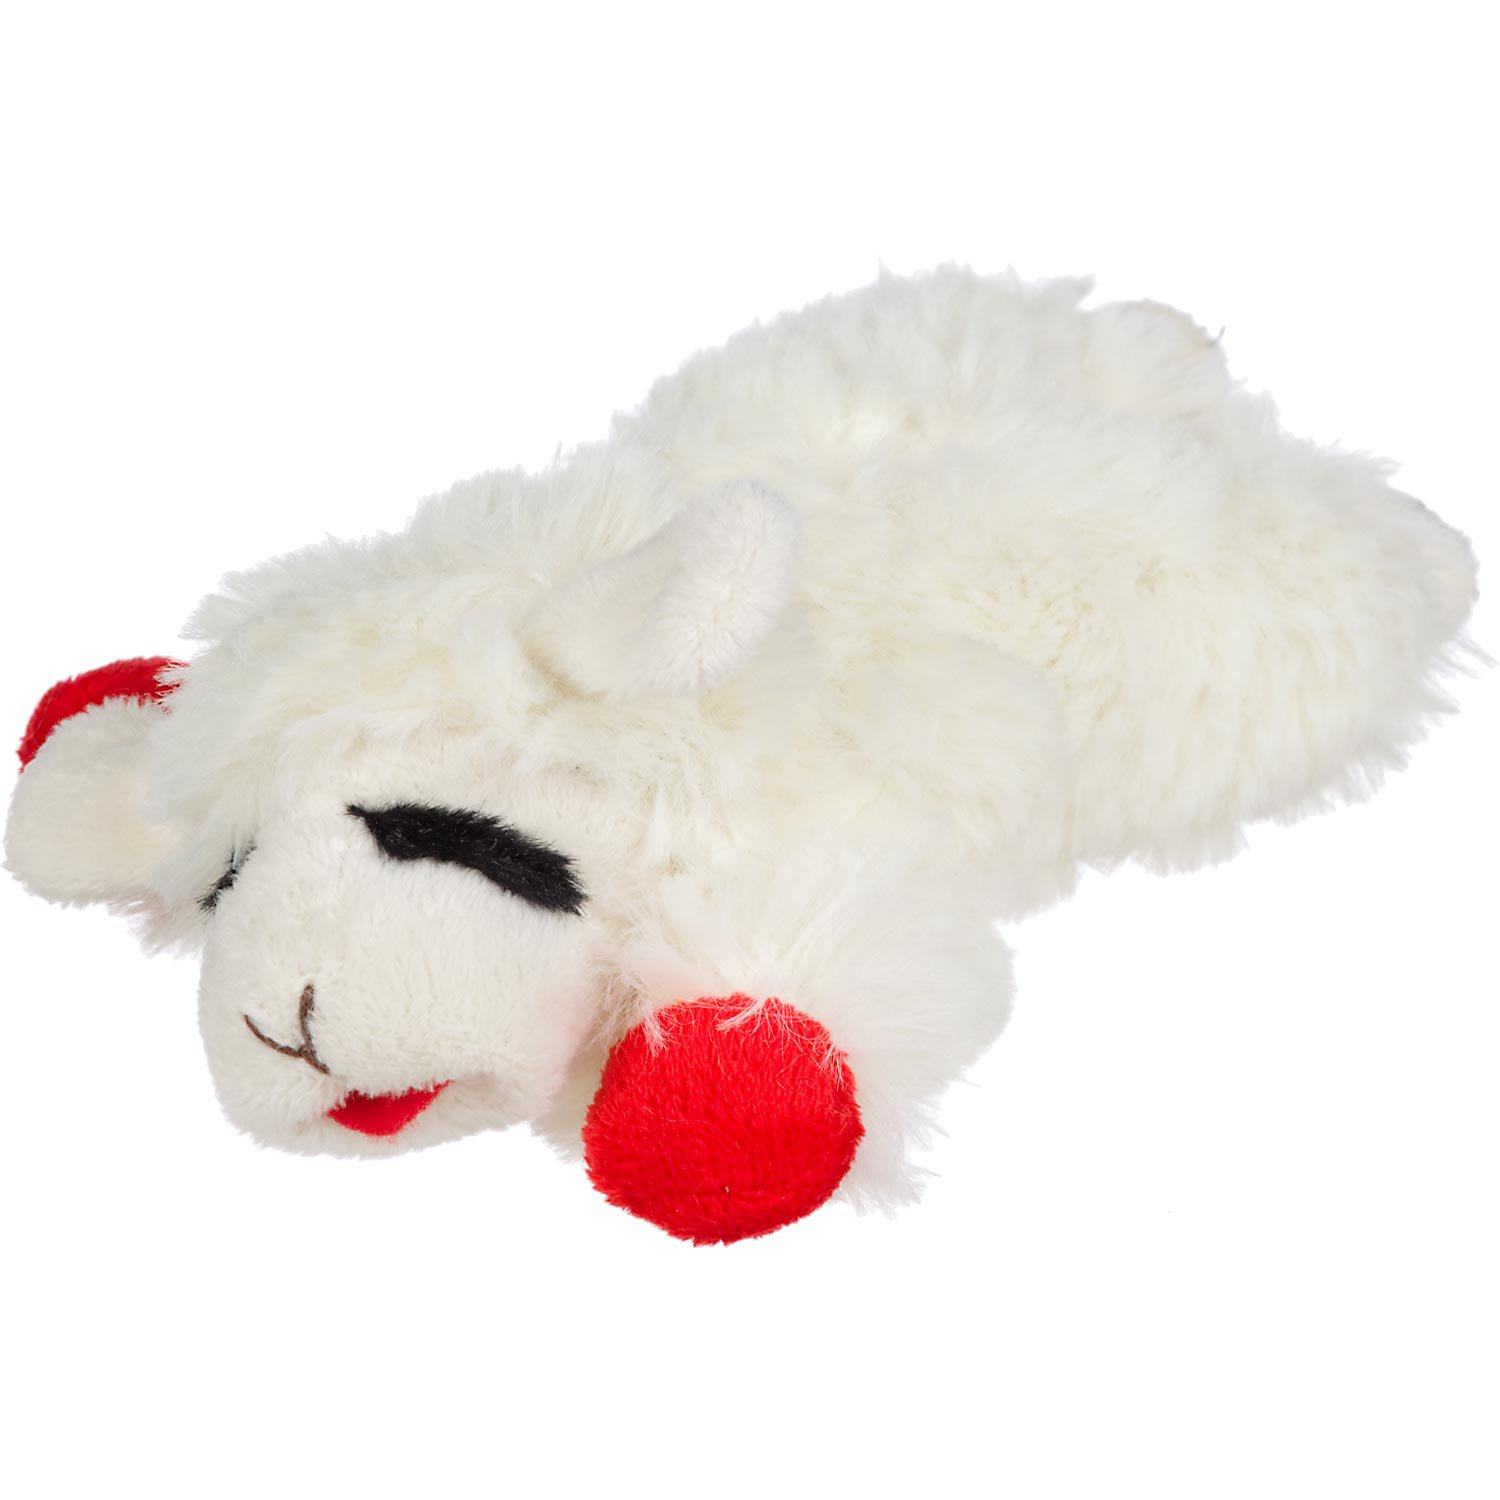 Plush Dog Toys Stuffed & No Stuffing Dog Toys